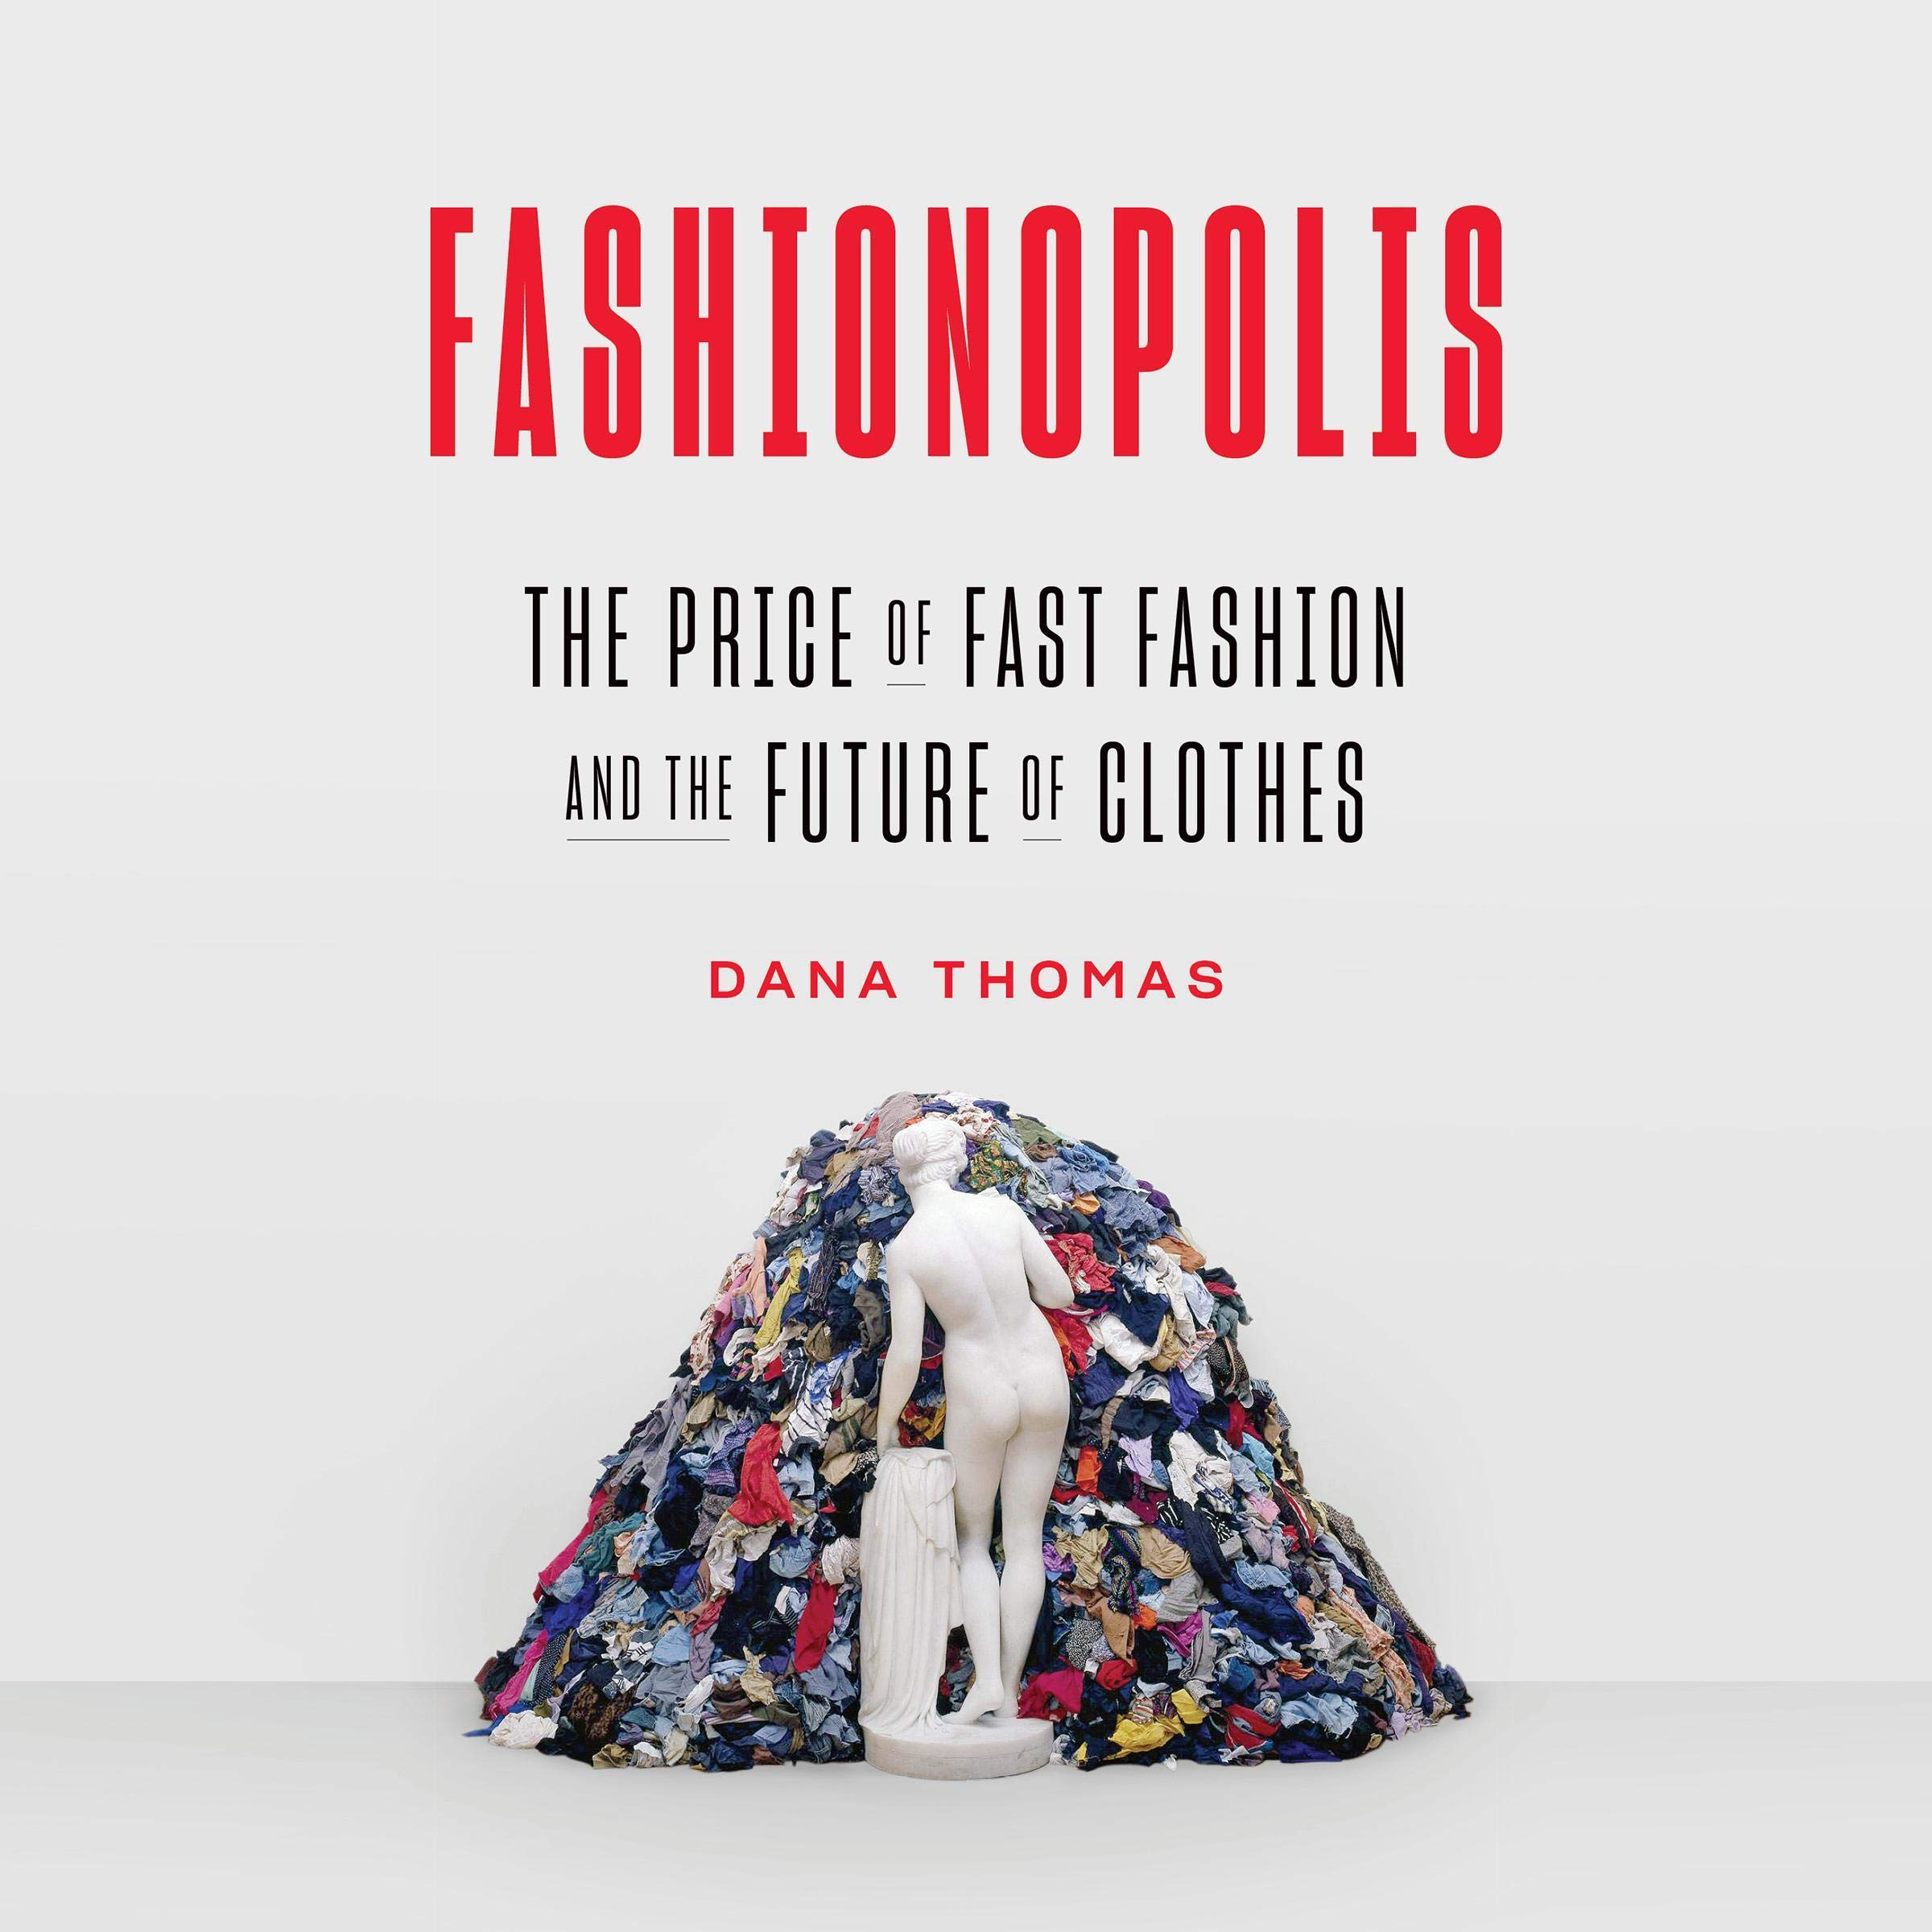 Fashionopolis  The Price Of Fast Fashion And The Future Of Clothes